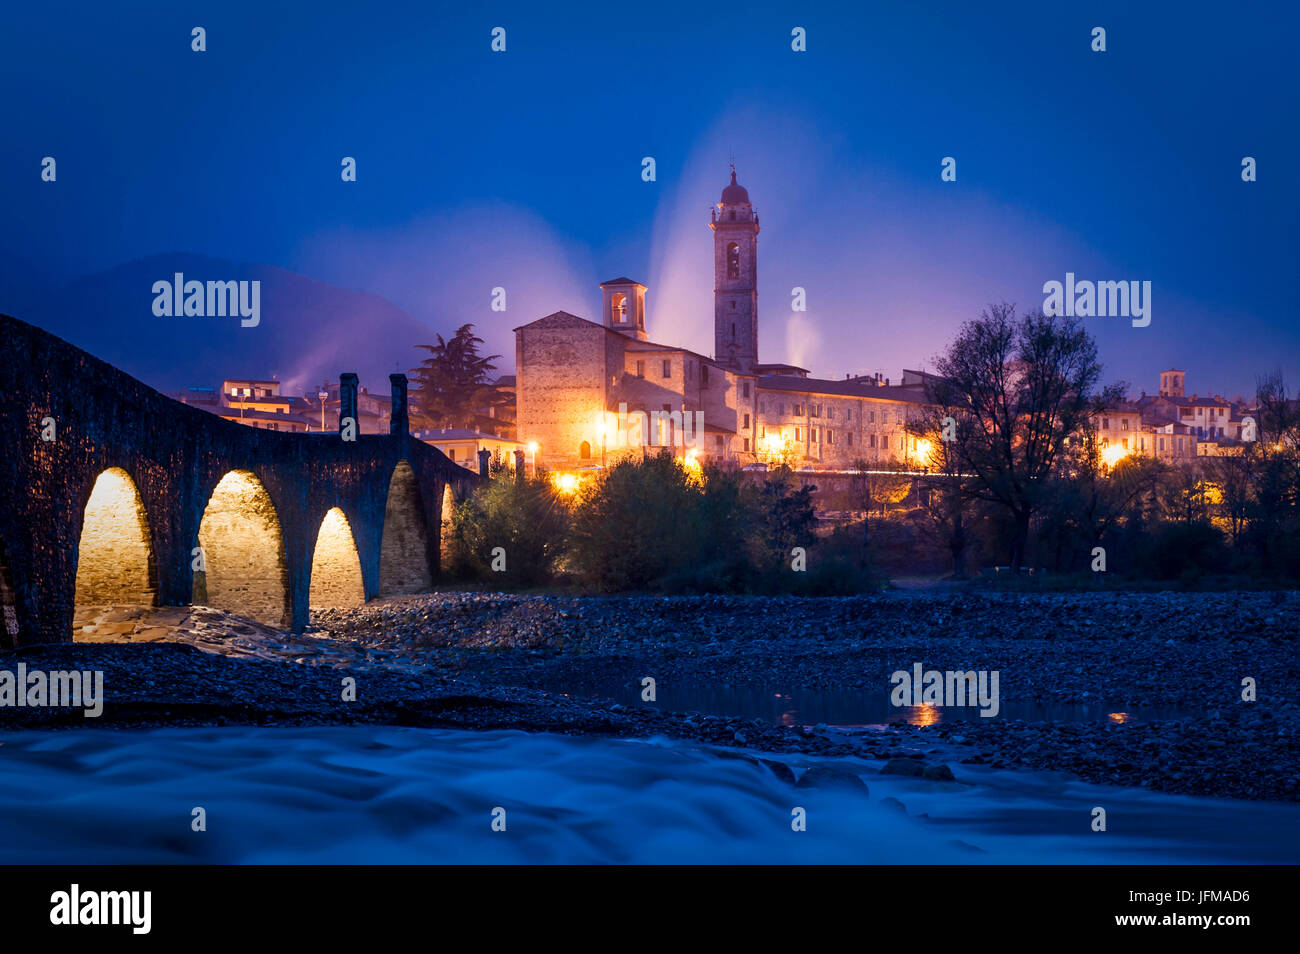 Bobbio, Trebbia Valley, Piacenza, Emilia Romagna, Italy, The small town near Trebbia river, - Stock Image